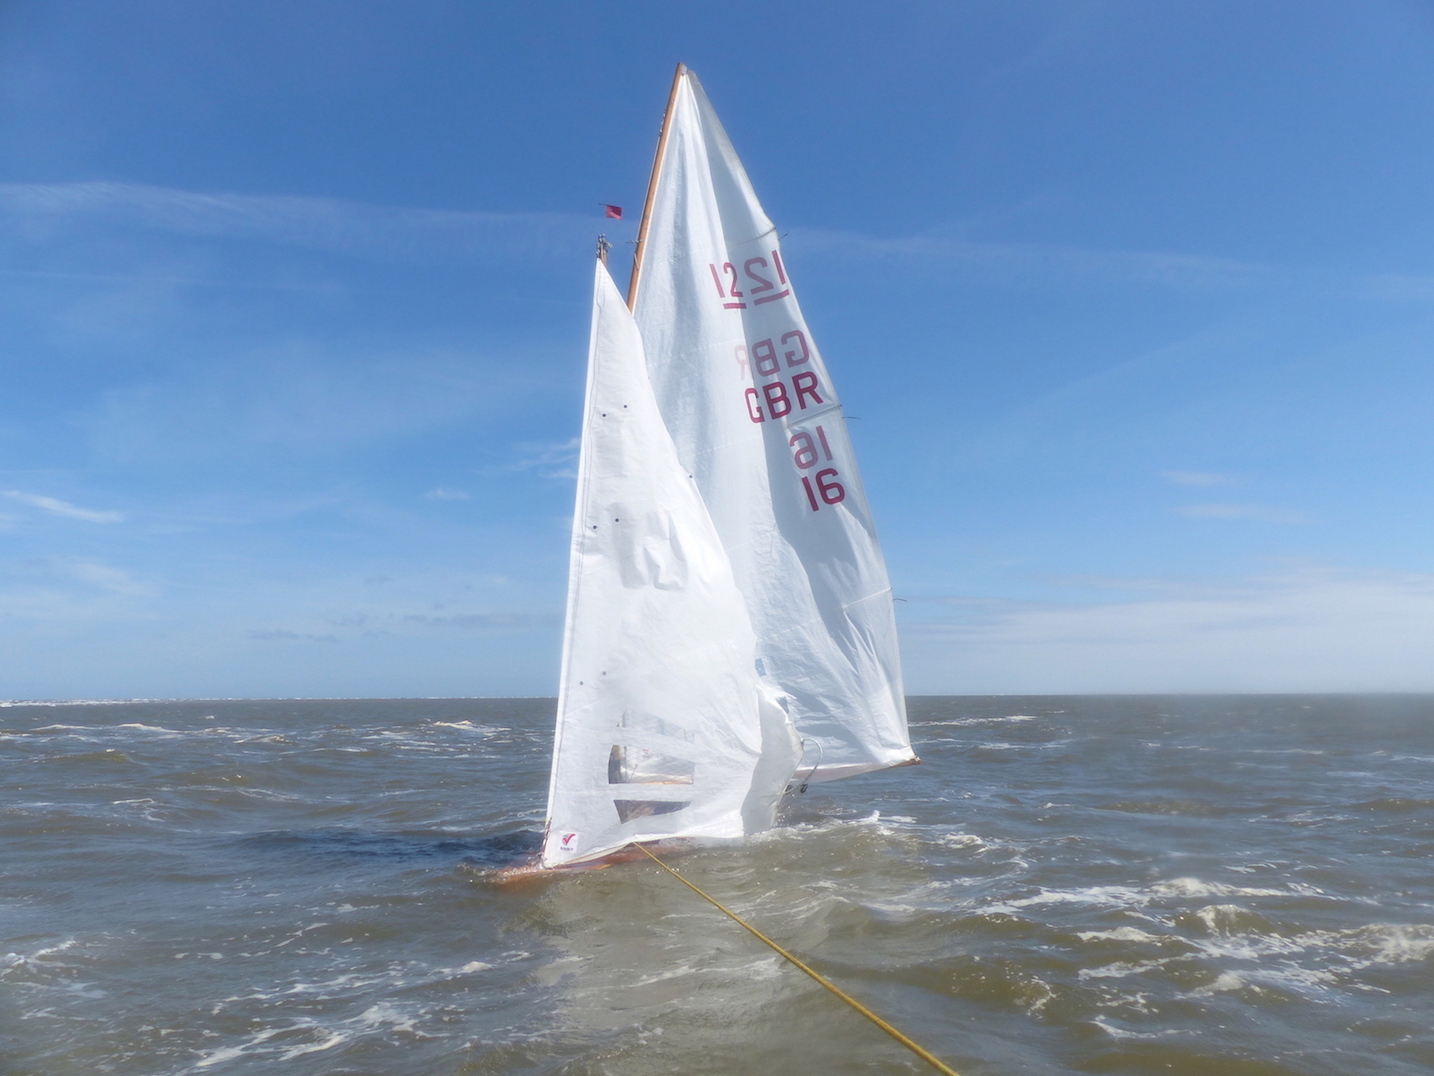 WSC GBR sunk but upright